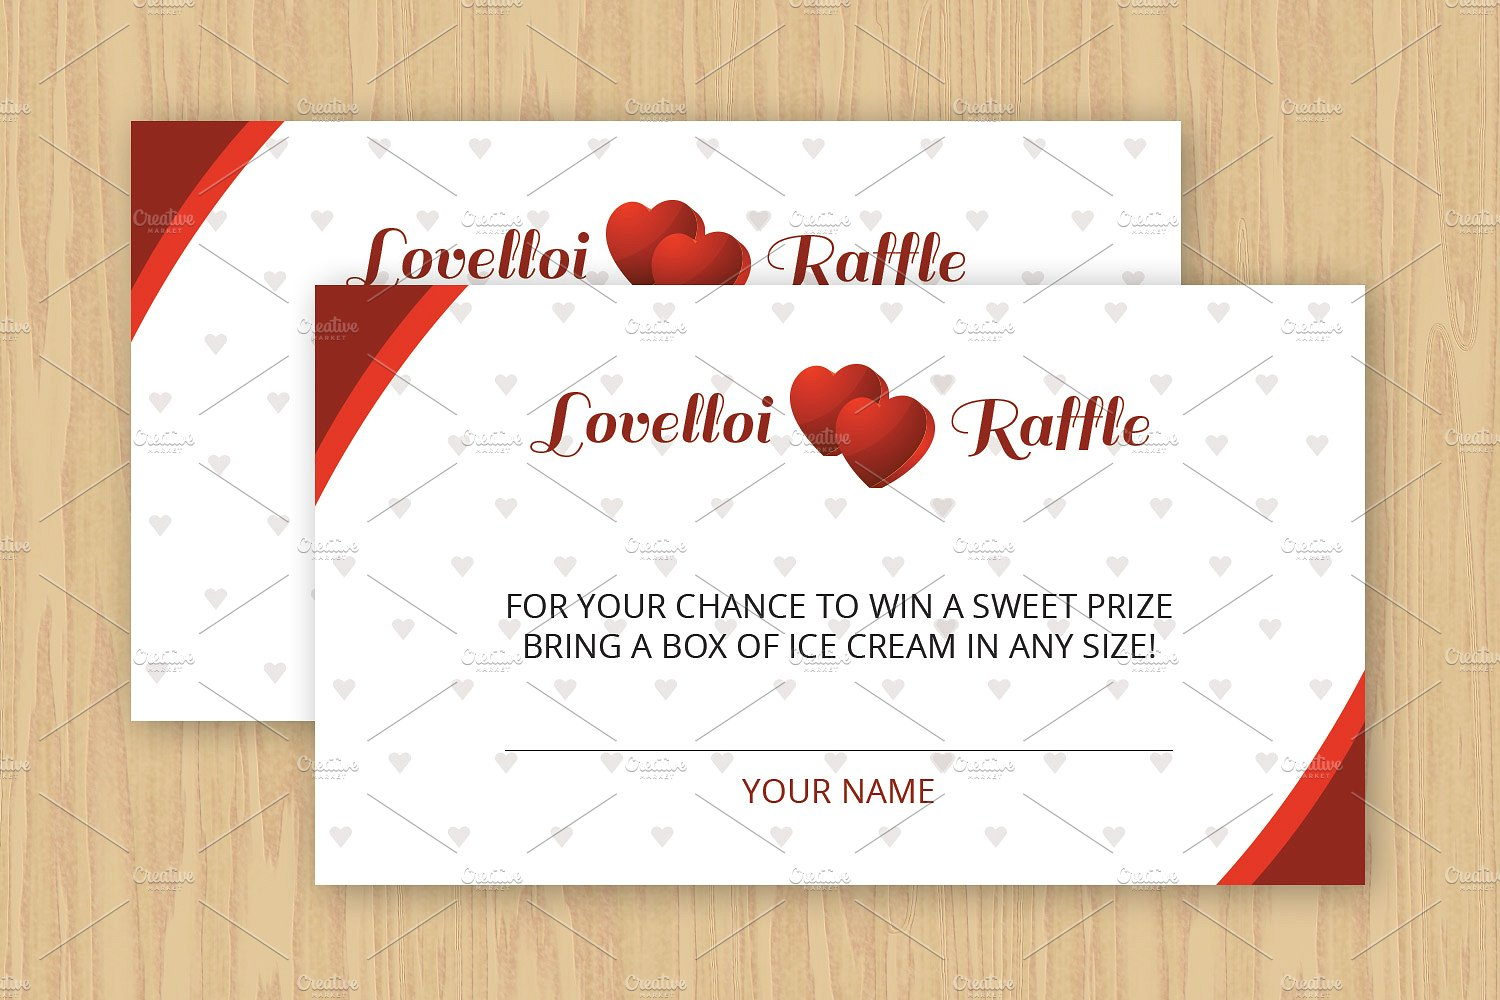 raffle ticket download